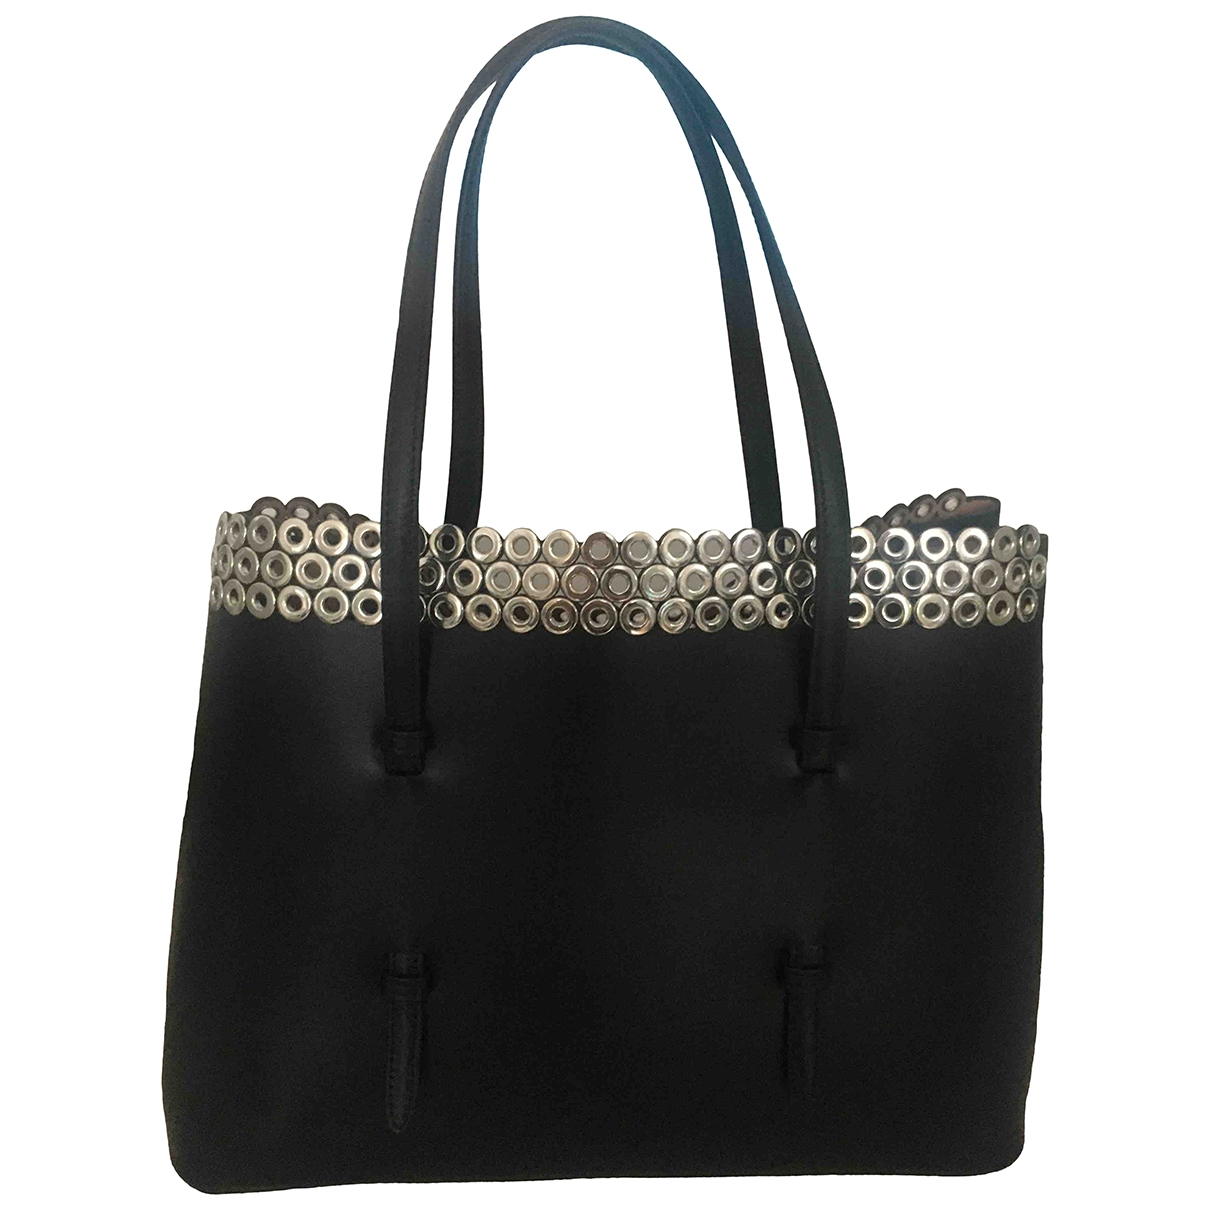 Alaïa \N Black Leather handbag for Women \N